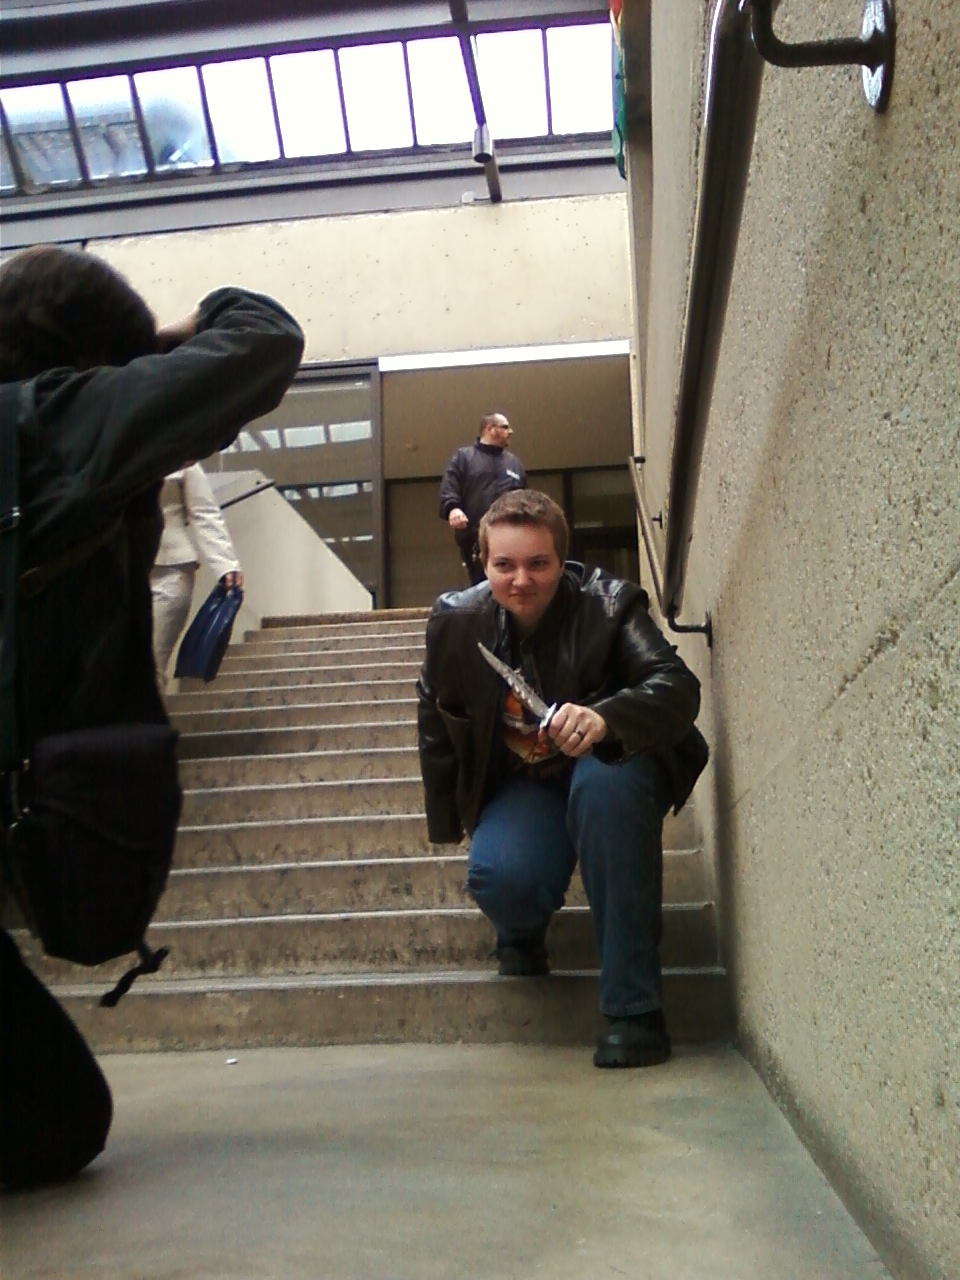 Dean on the stairs 3 by regates